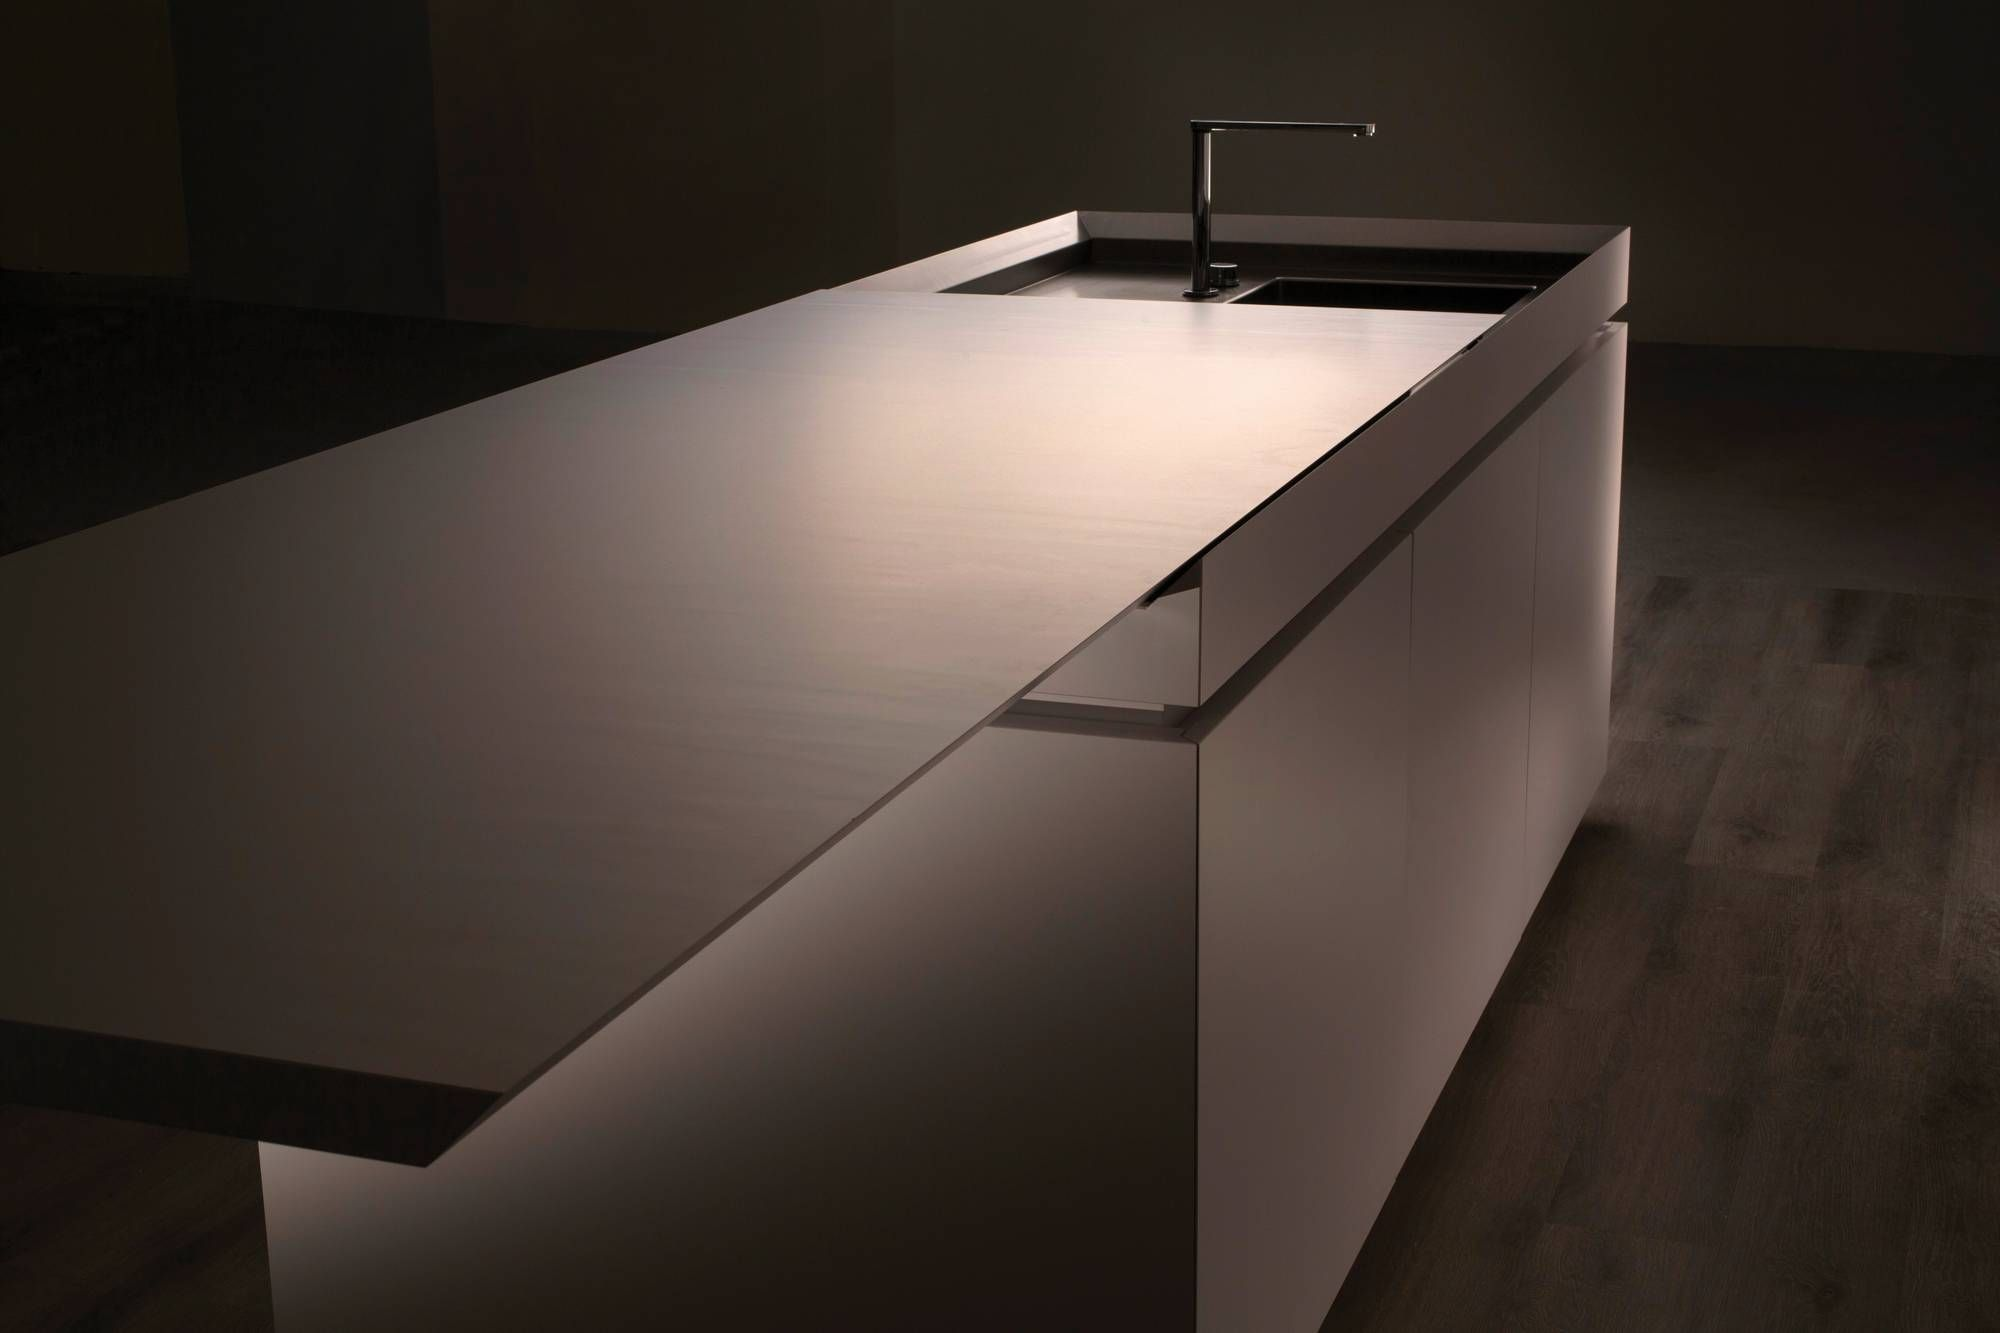 Strato Küchen Strato Cucine Kitchen Counter Slides Over Washbasin House